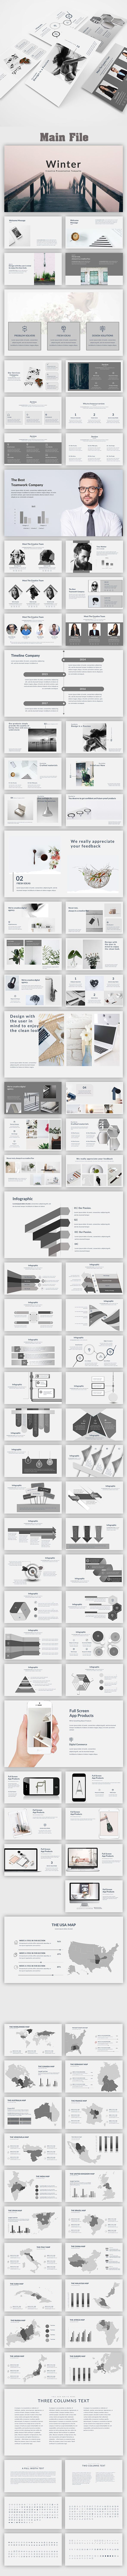 Winter Minimal #powerpoint Template - #creative Powerpoint Templates